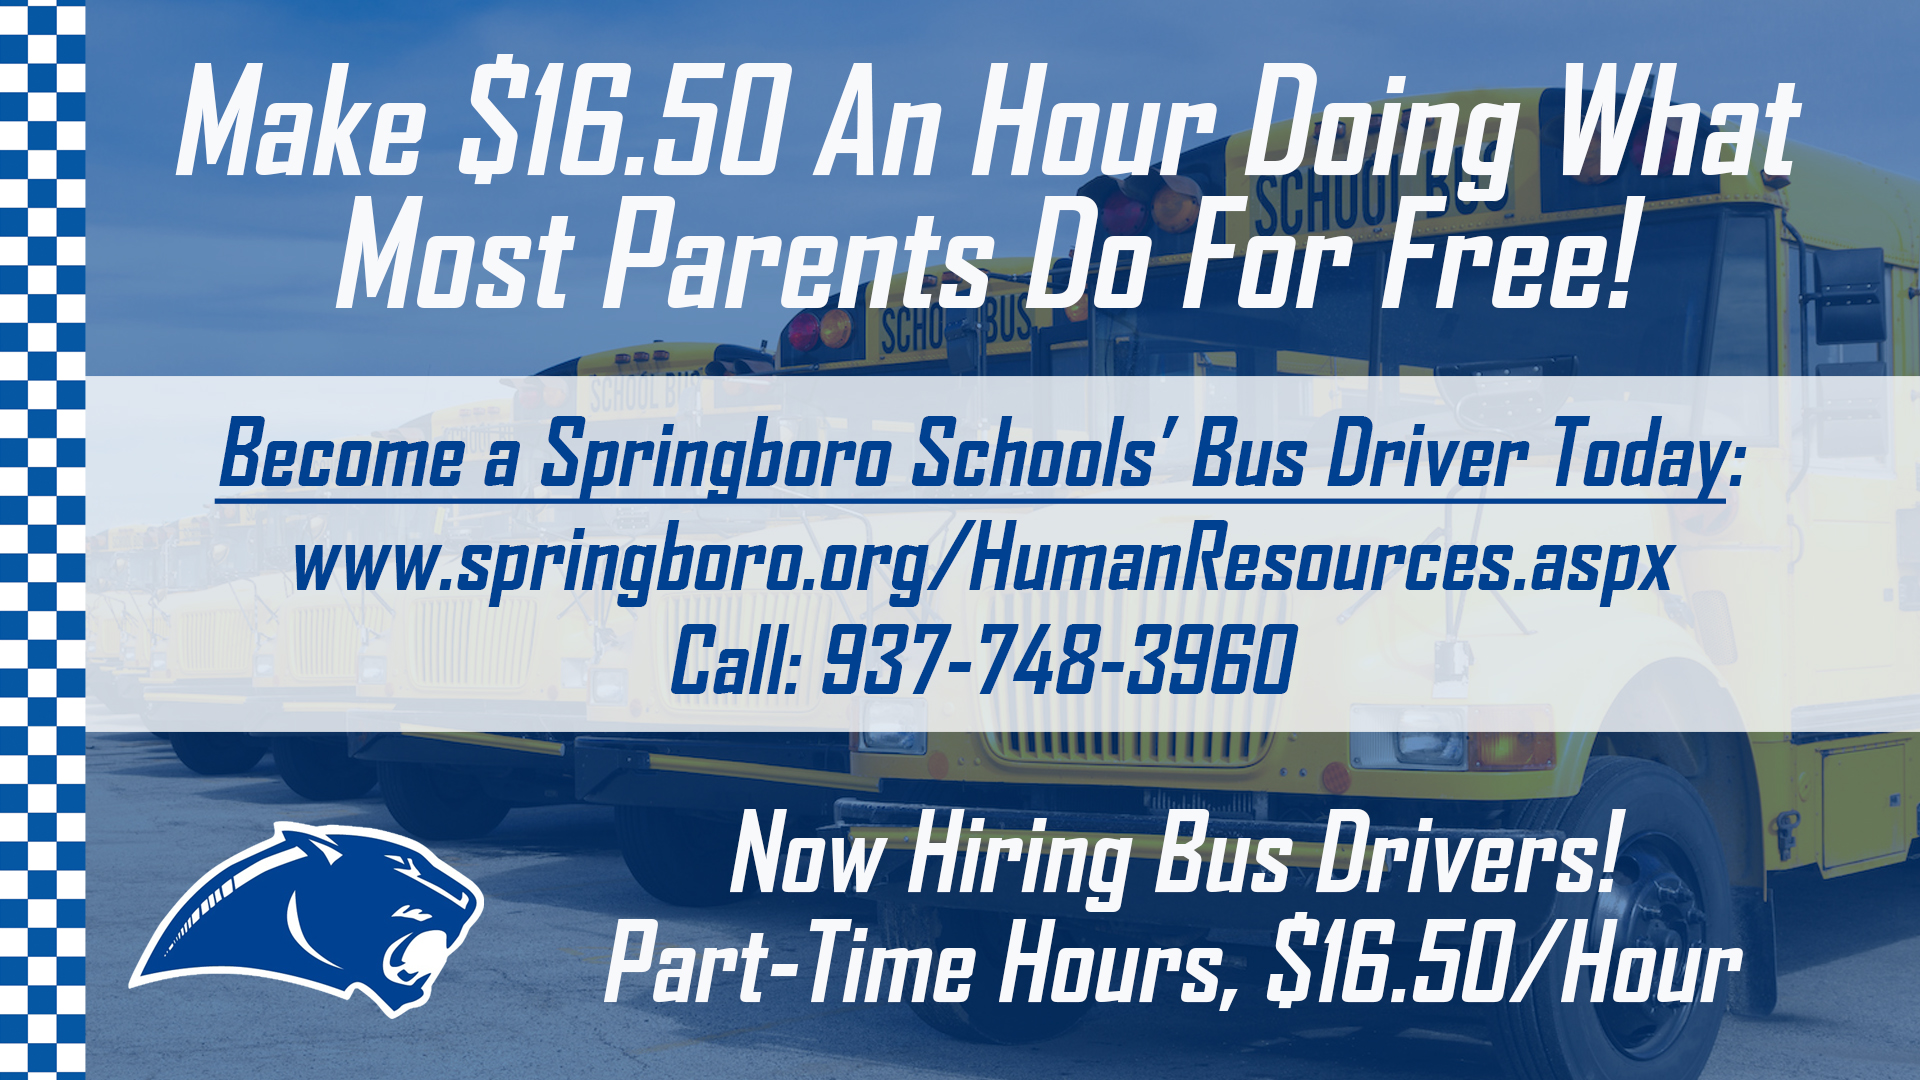 Now Hiring: Bus Drivers